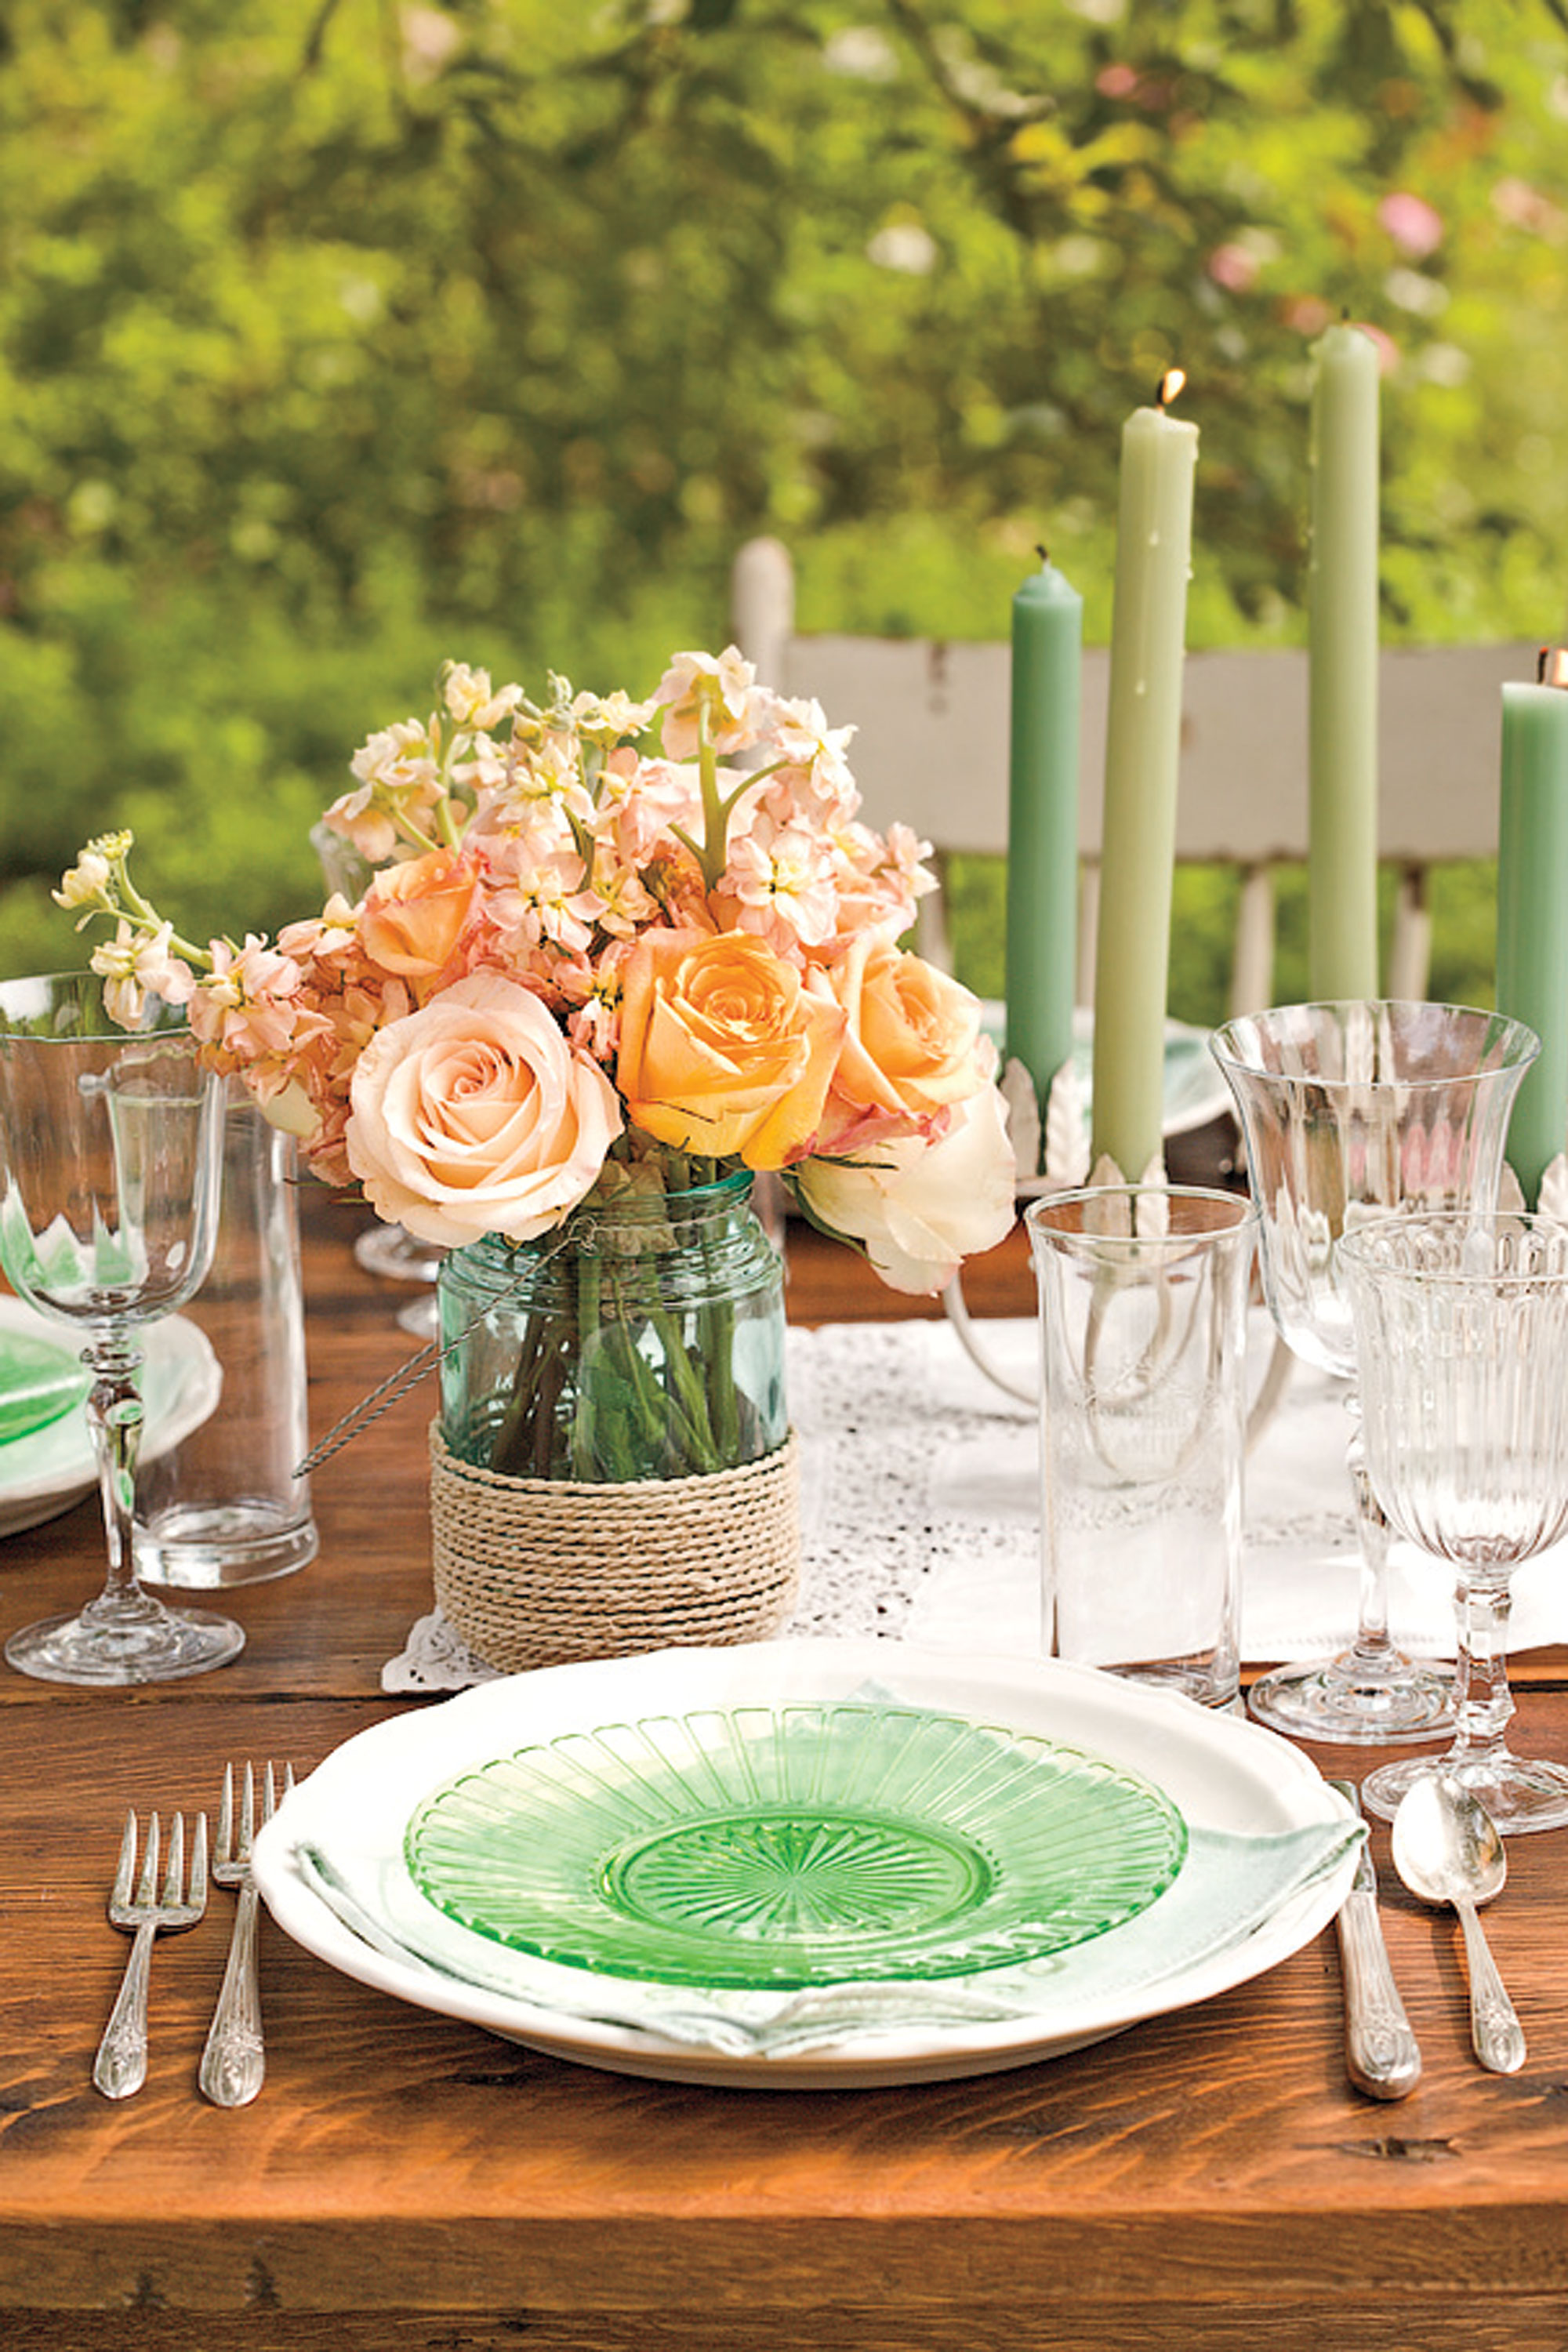 Table Decor And More 35 Perfect Spring Table Decorations Ideas For Dinner